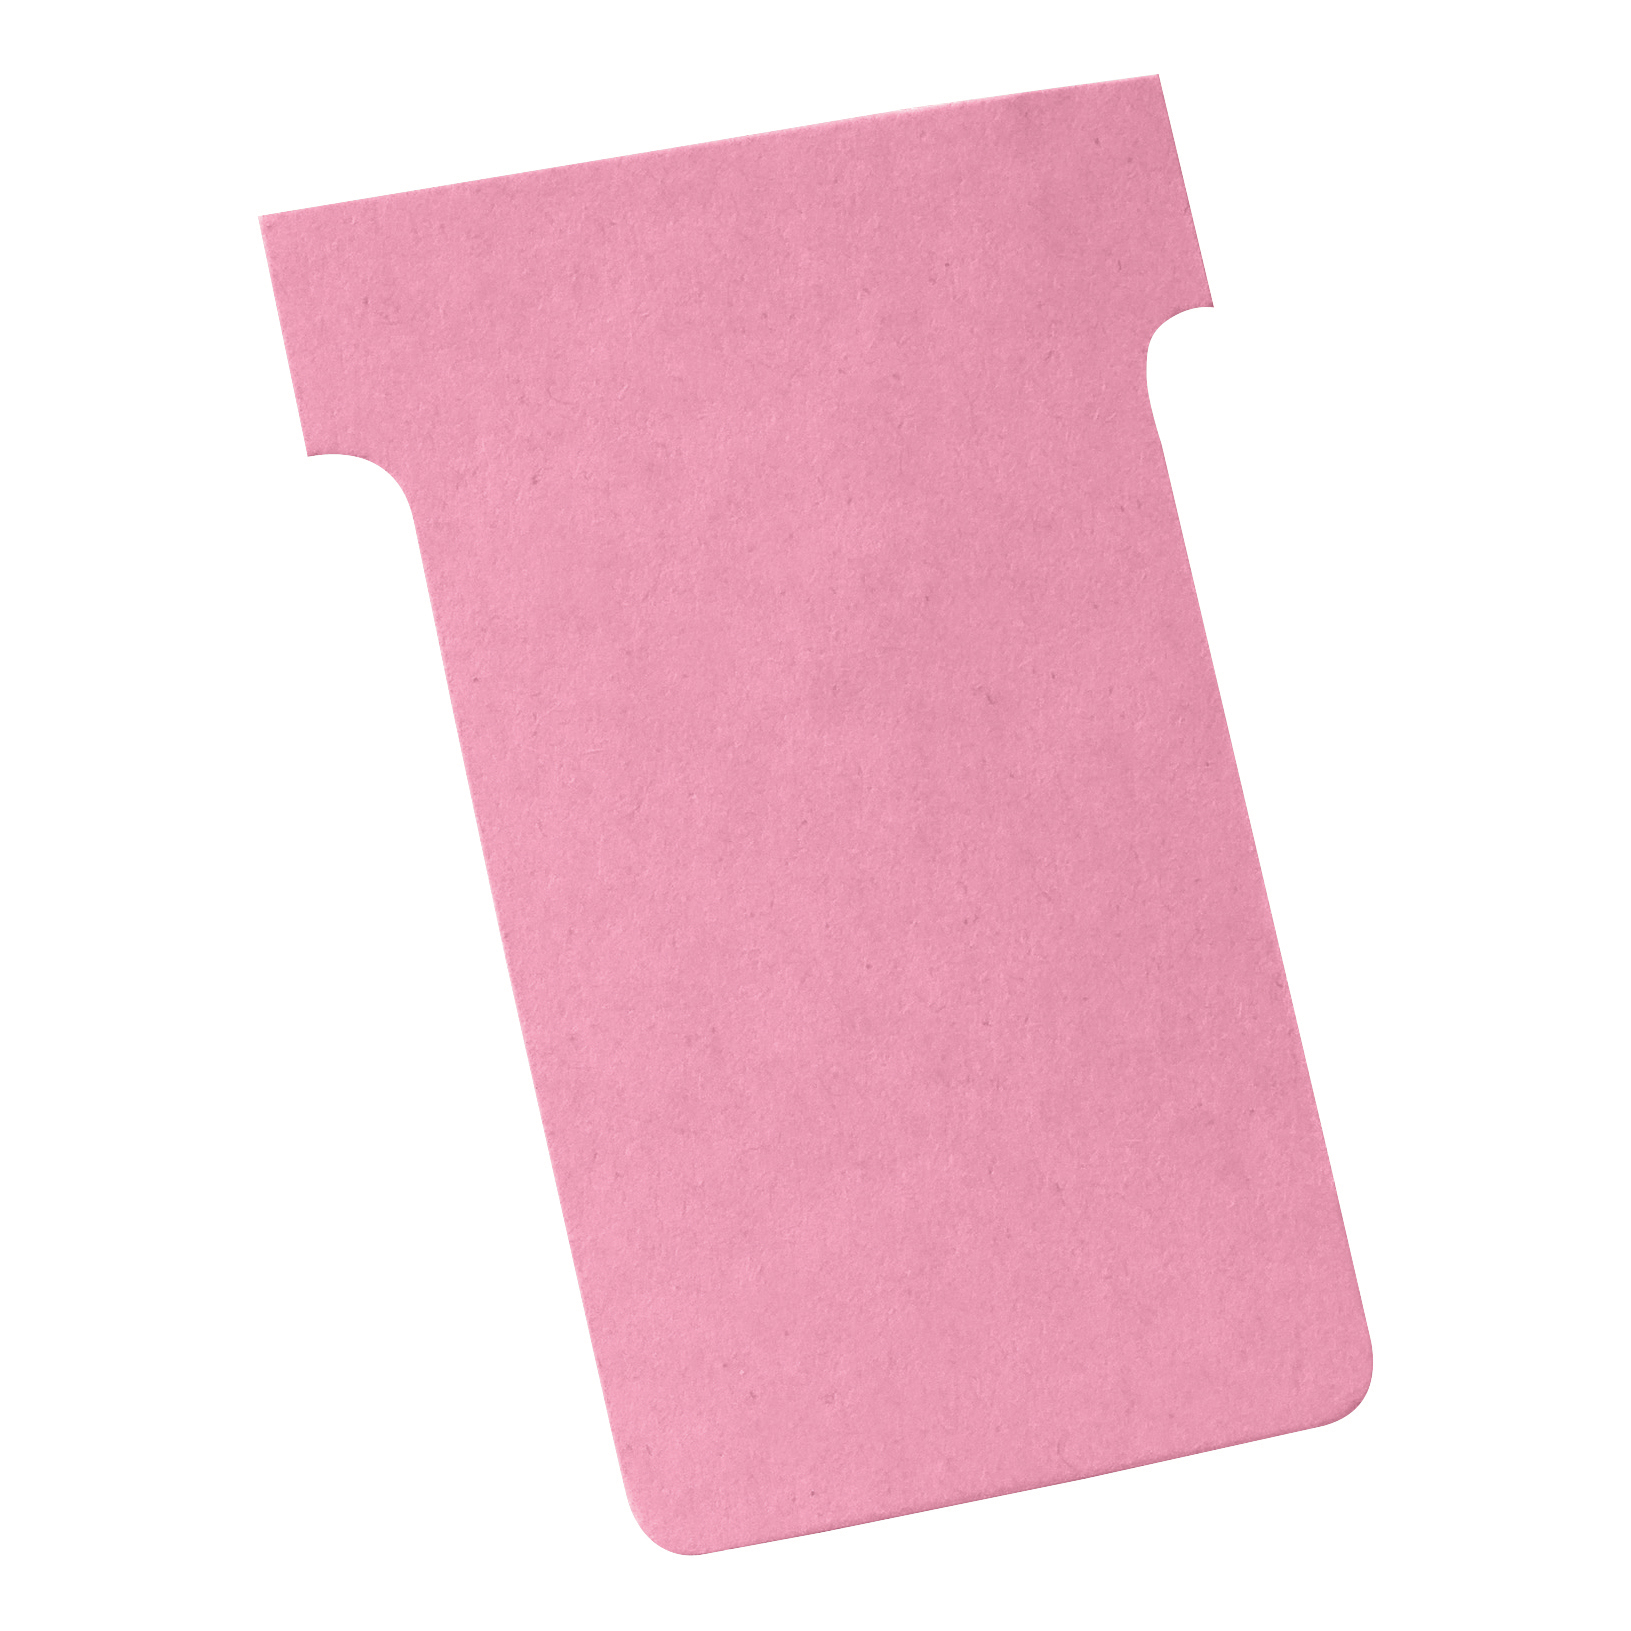 Image for Nobo T-Cards 160gsm Tab Top 15mm W61x Bottom W48.5x Full H86mm Size 2 Pink Ref 2002008 [Pack 100]